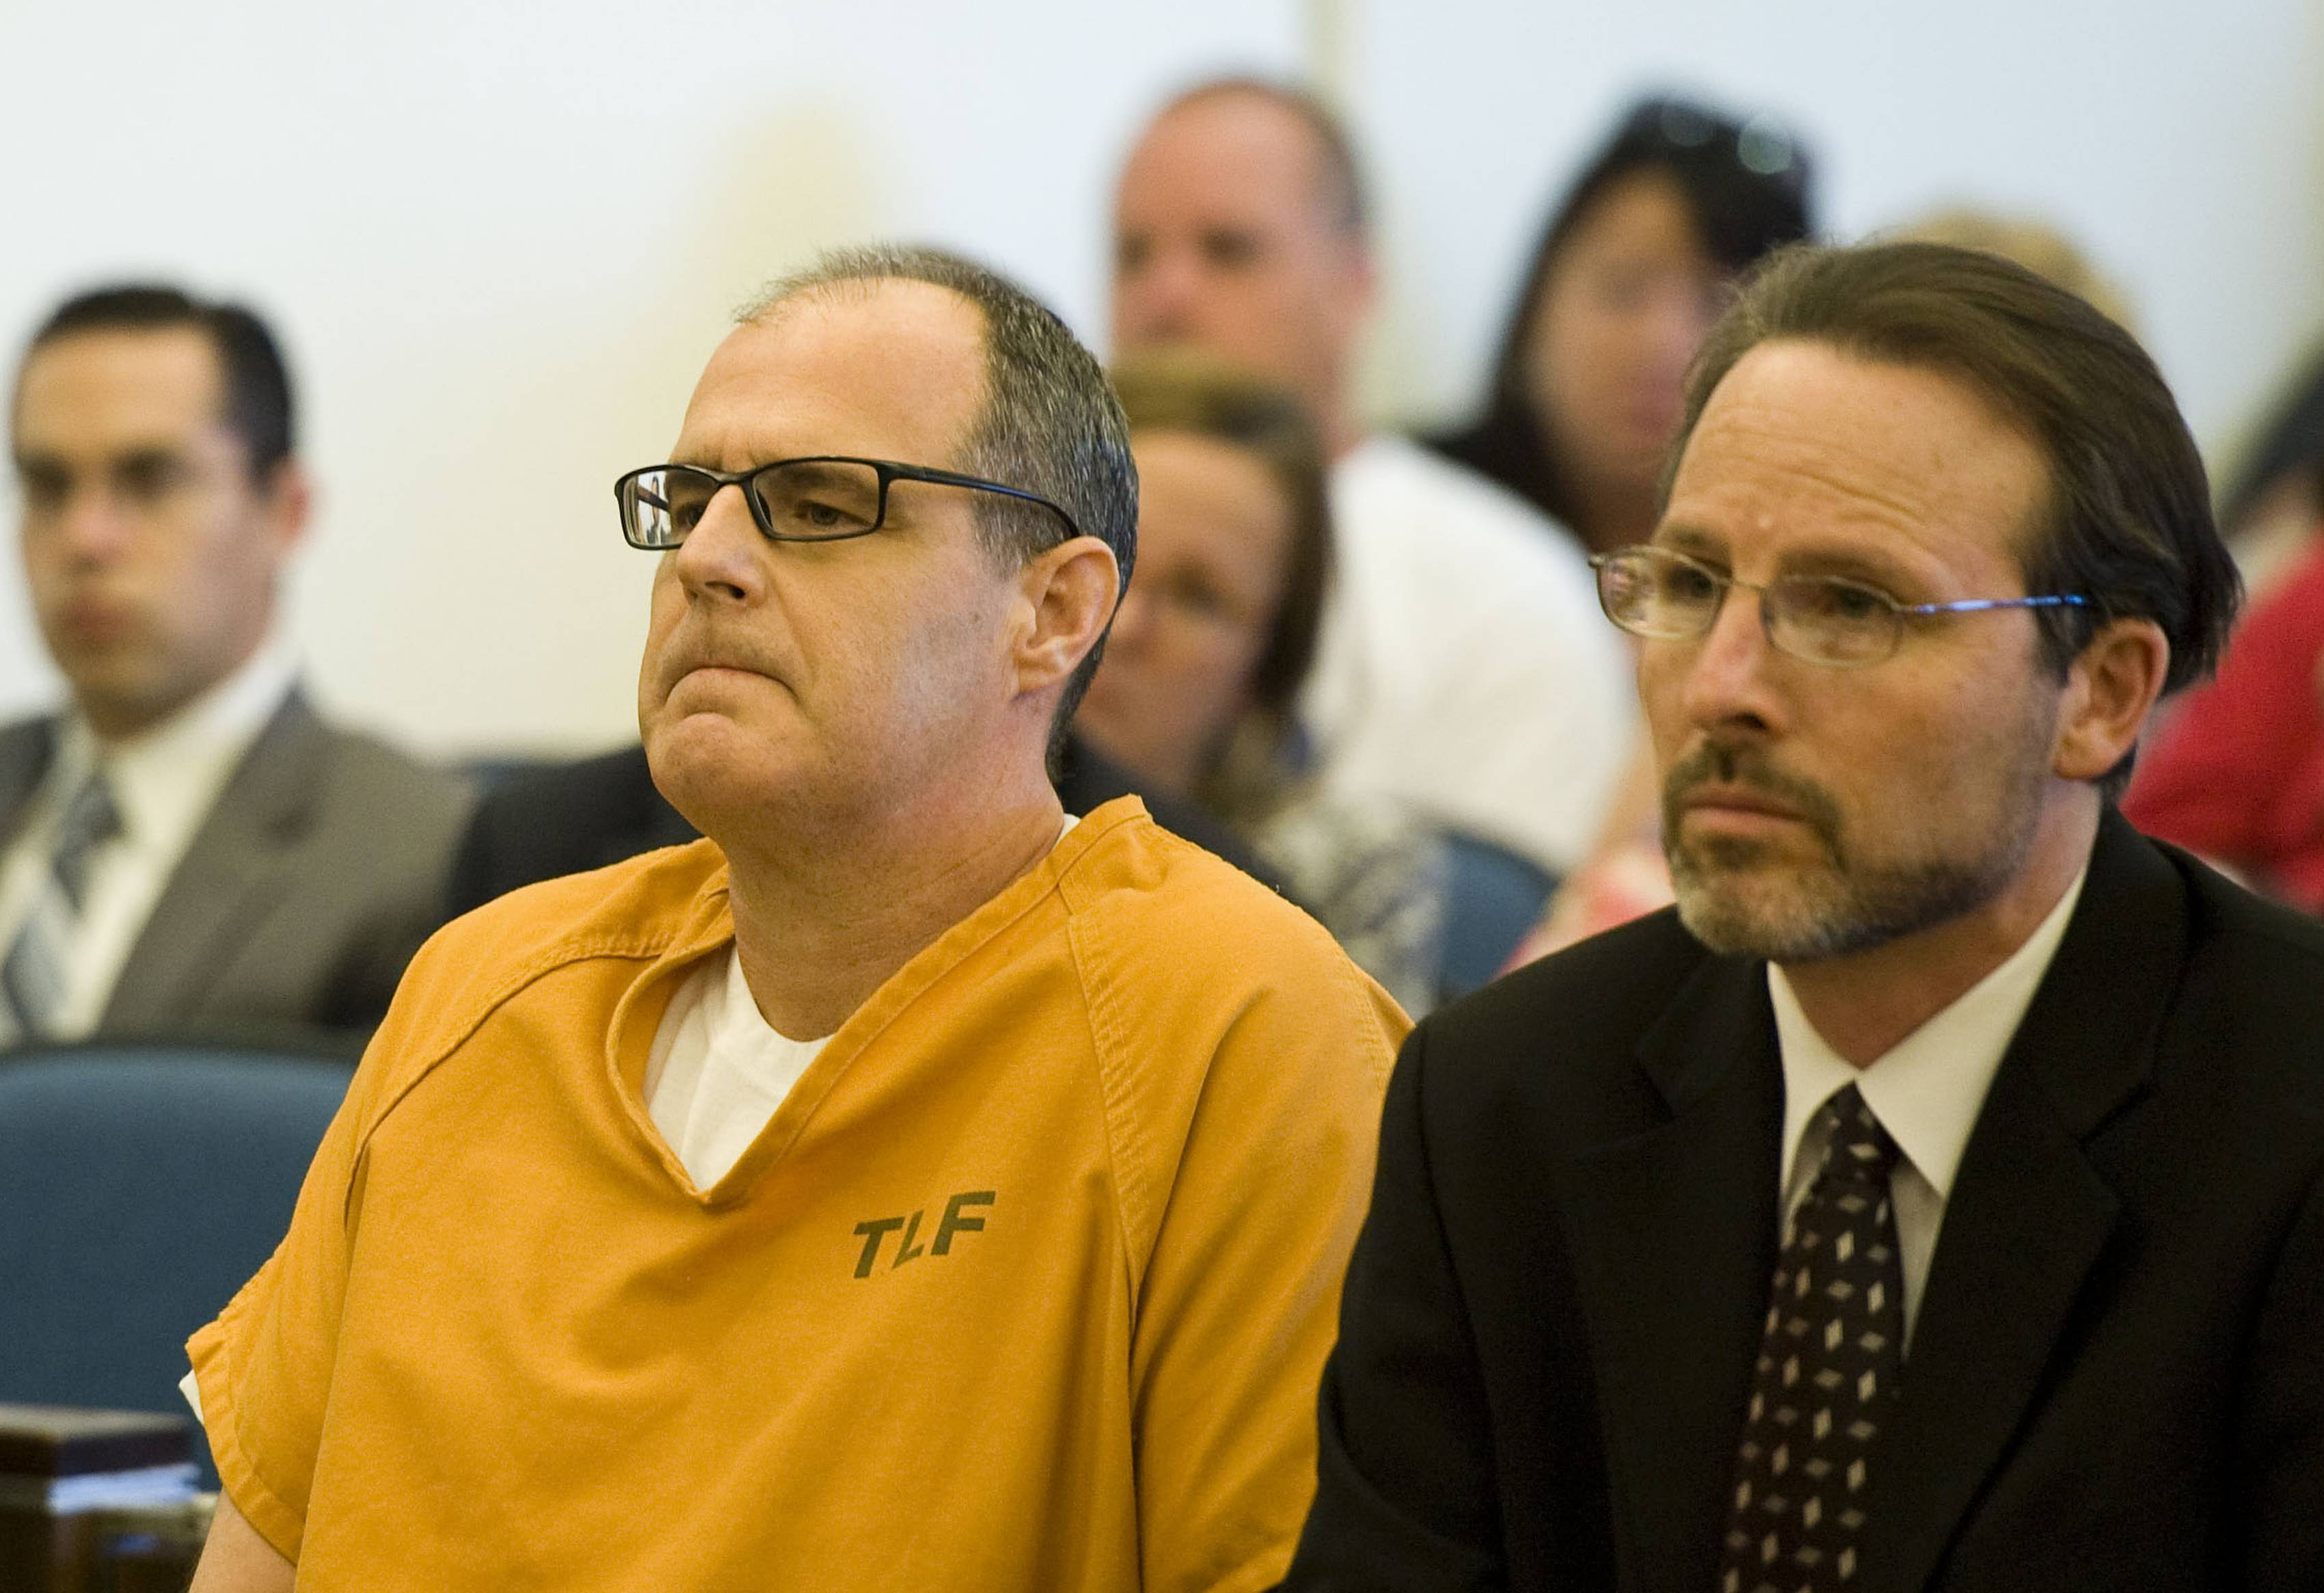 Scott Dekraai sits Friday with his public defender Scott Sanders in Orange County Superior Court in Santa Ana, Calif.